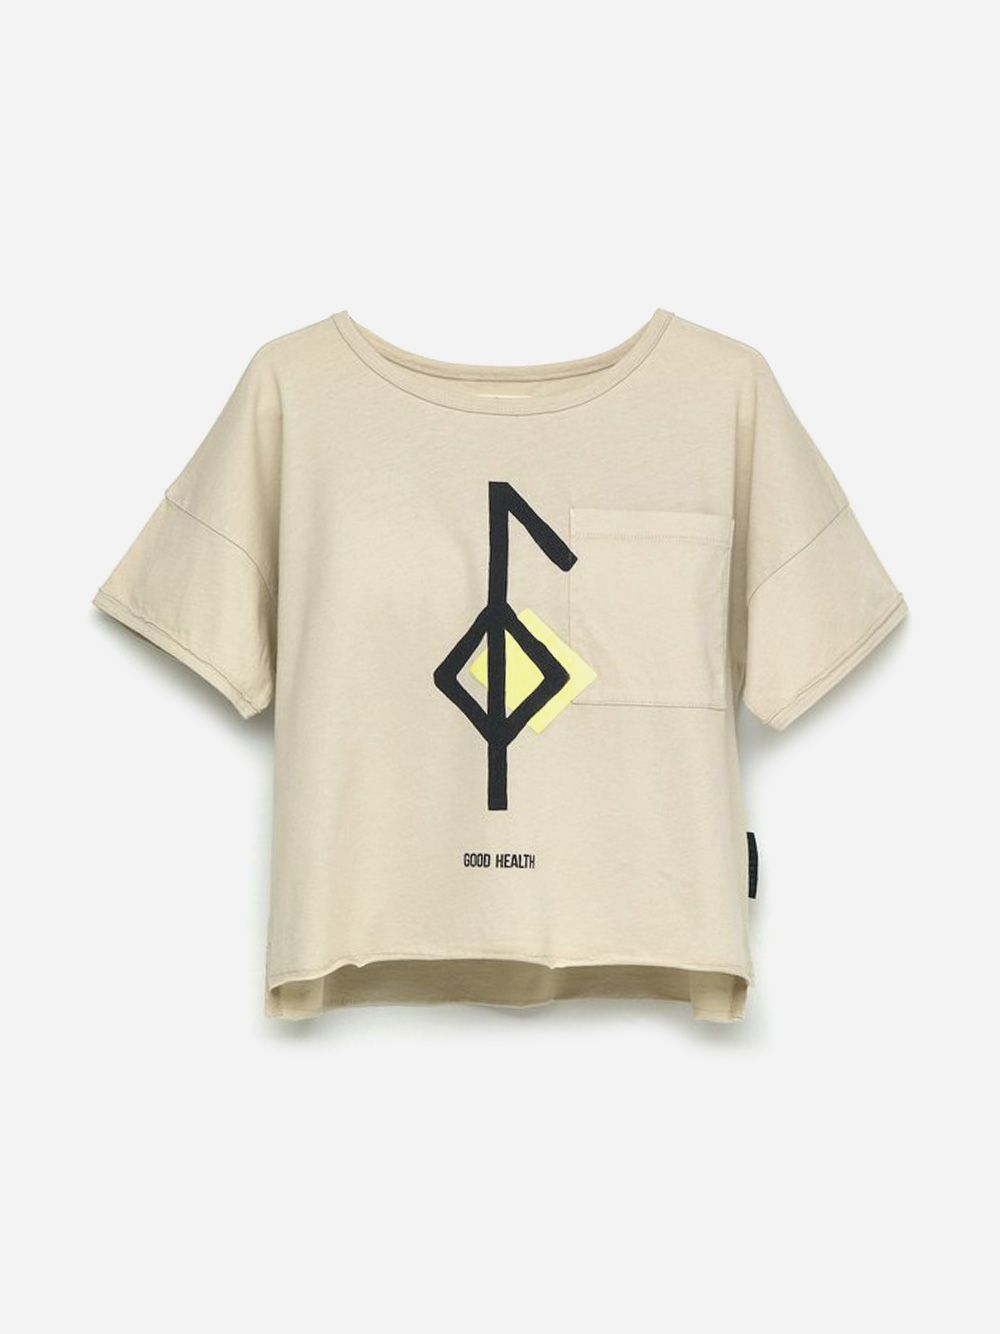 Printed Pocket T-shirt Sand